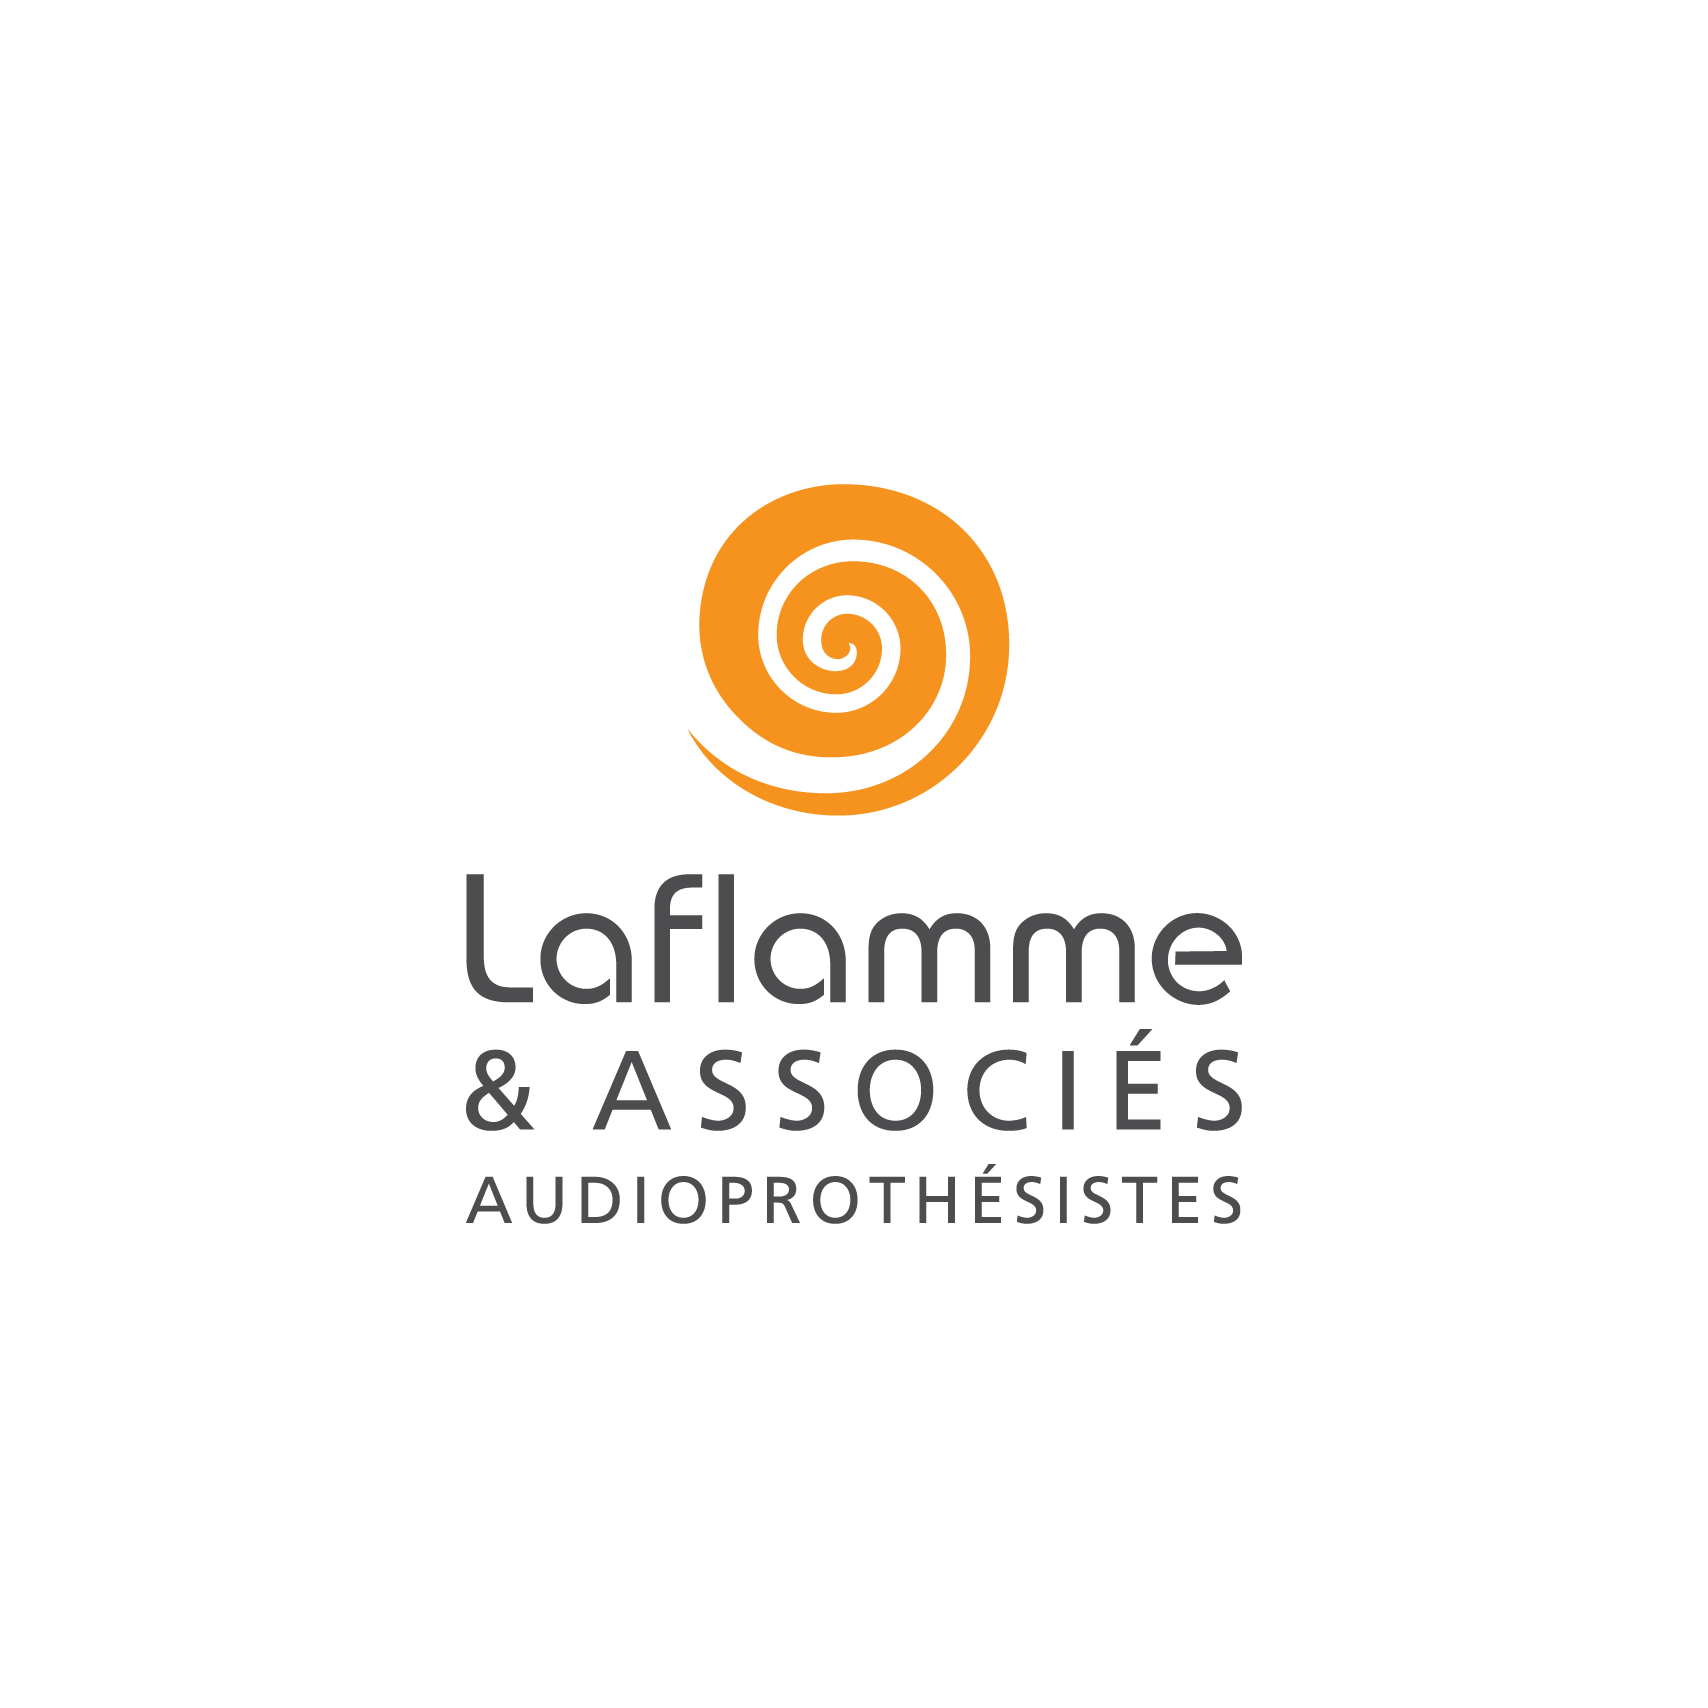 MlleRouge_logos_Laflamme